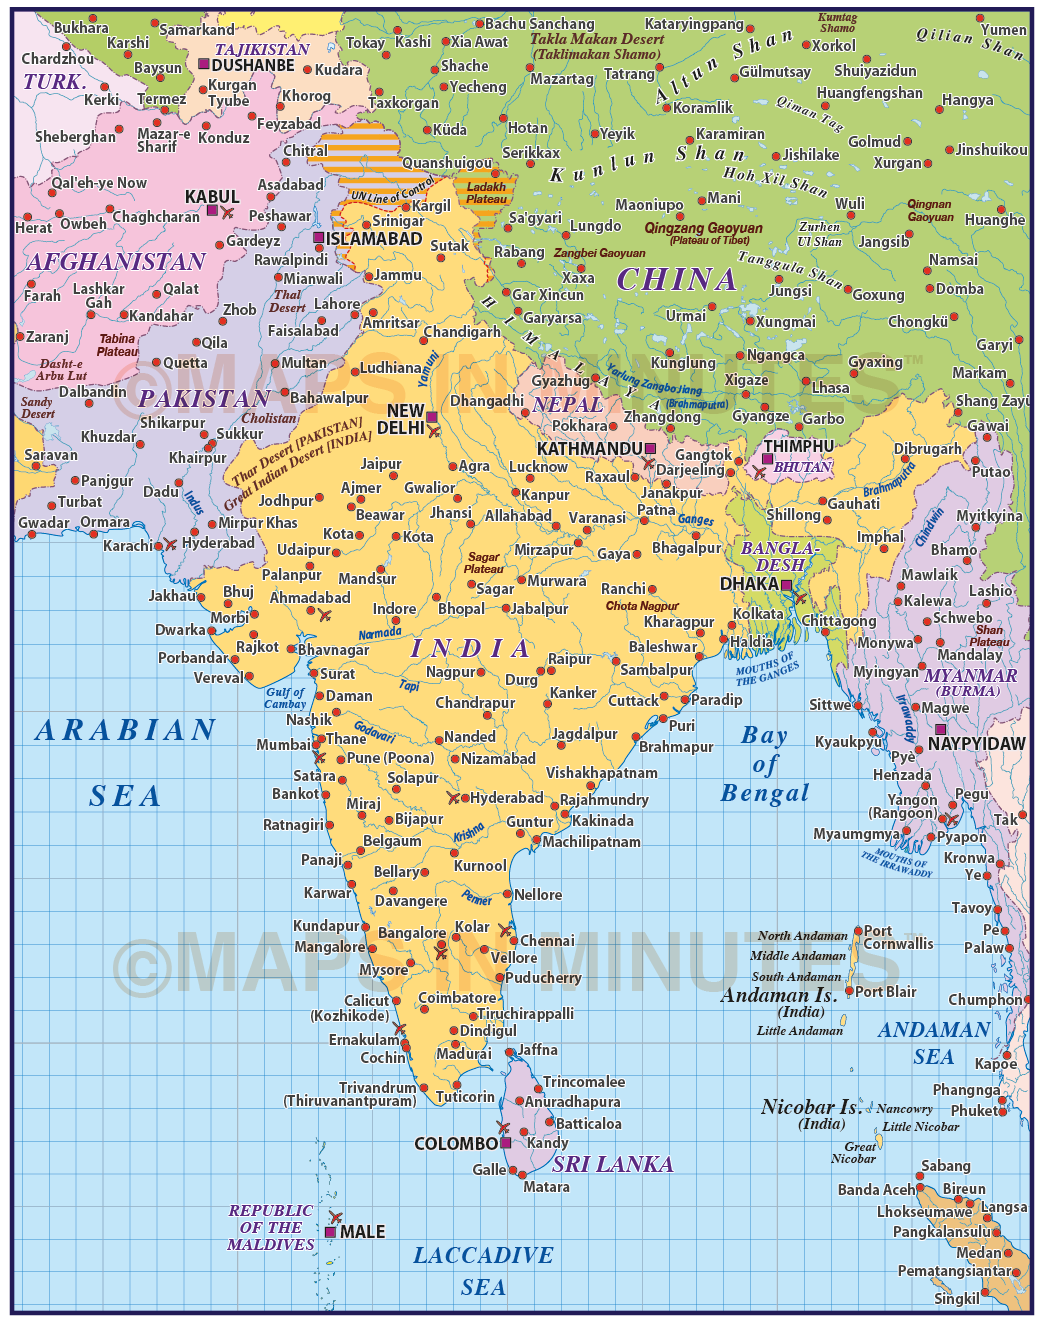 India Map Pdf Vector India Country Map @10m scale in Illustrator and PDF format India Map Pdf